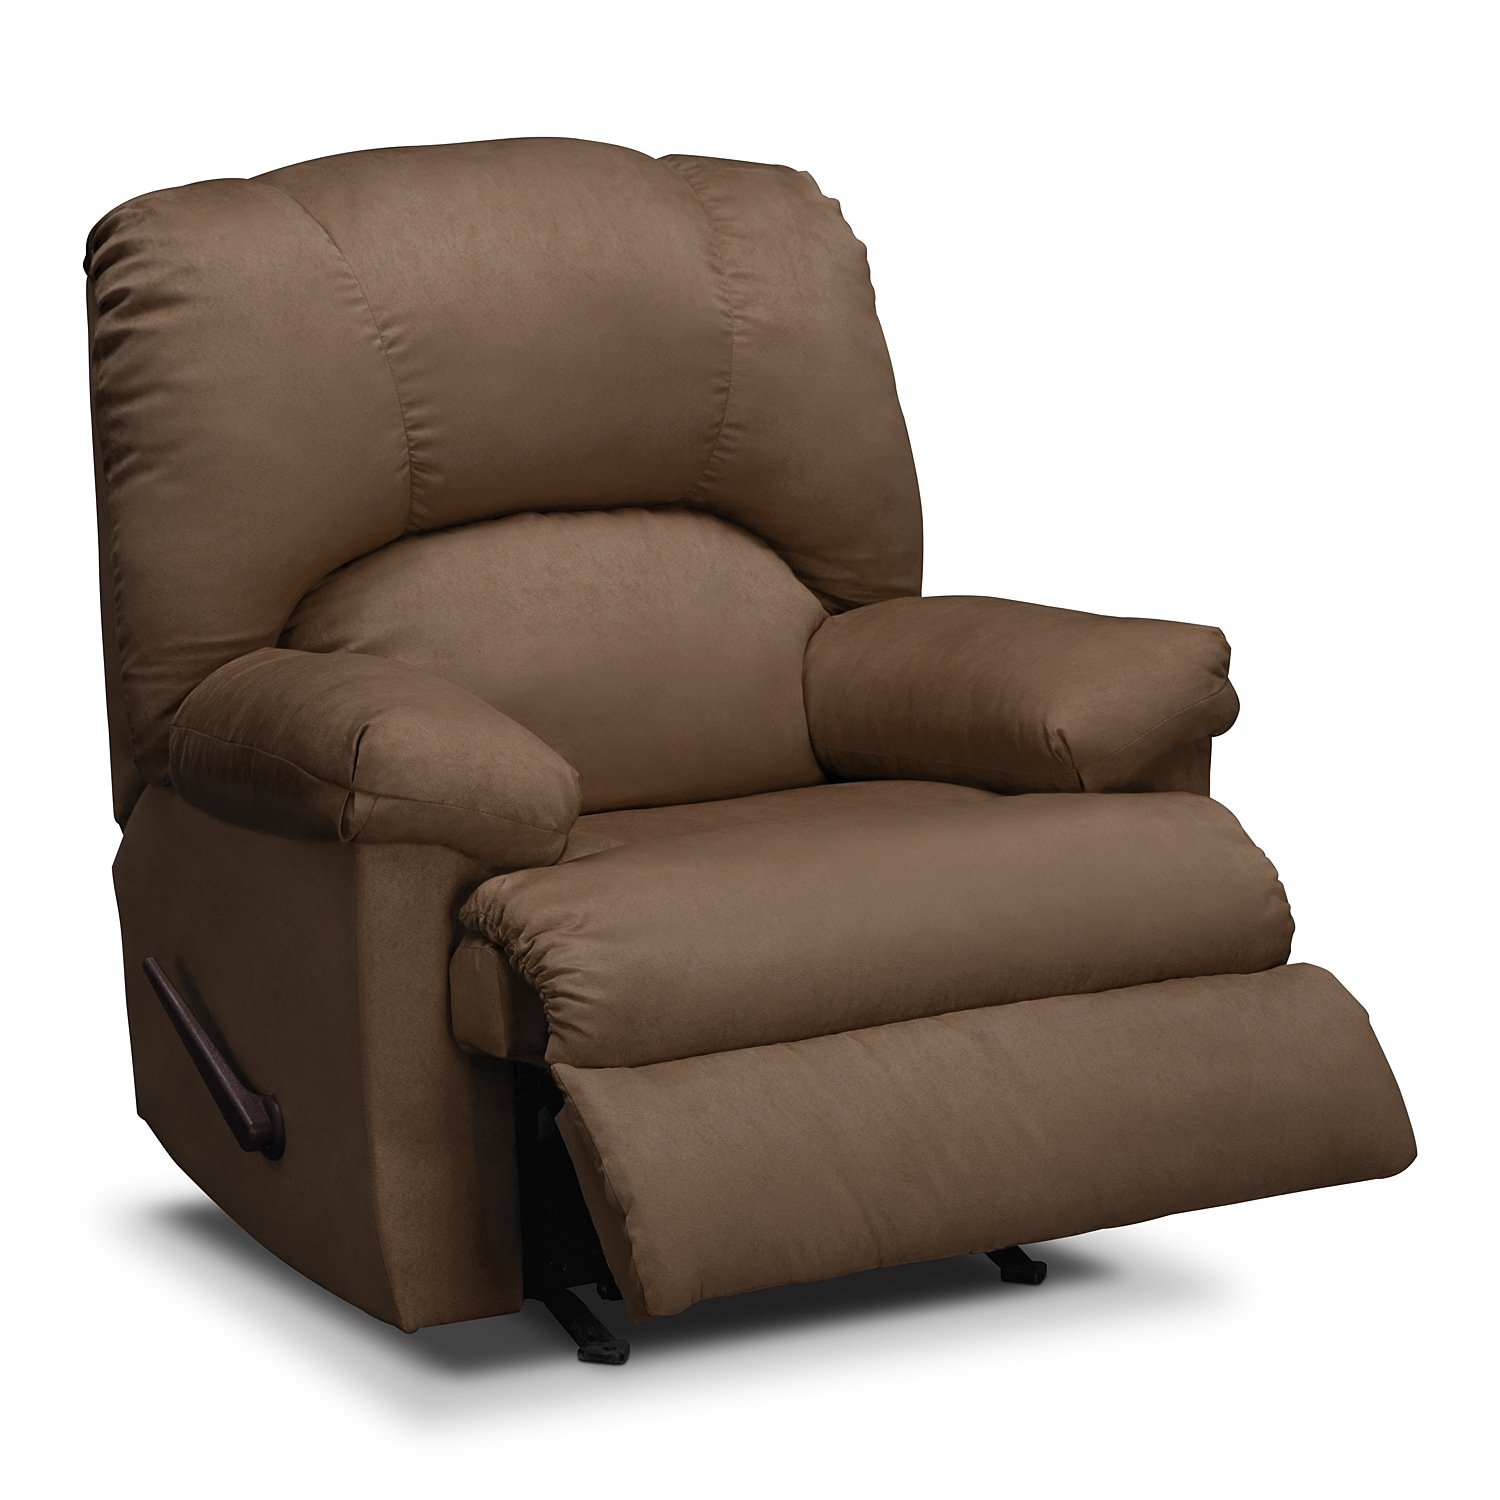 recliner recliners small dark rocker chair perfect for room your stratolounger charming brown living leather white chairs